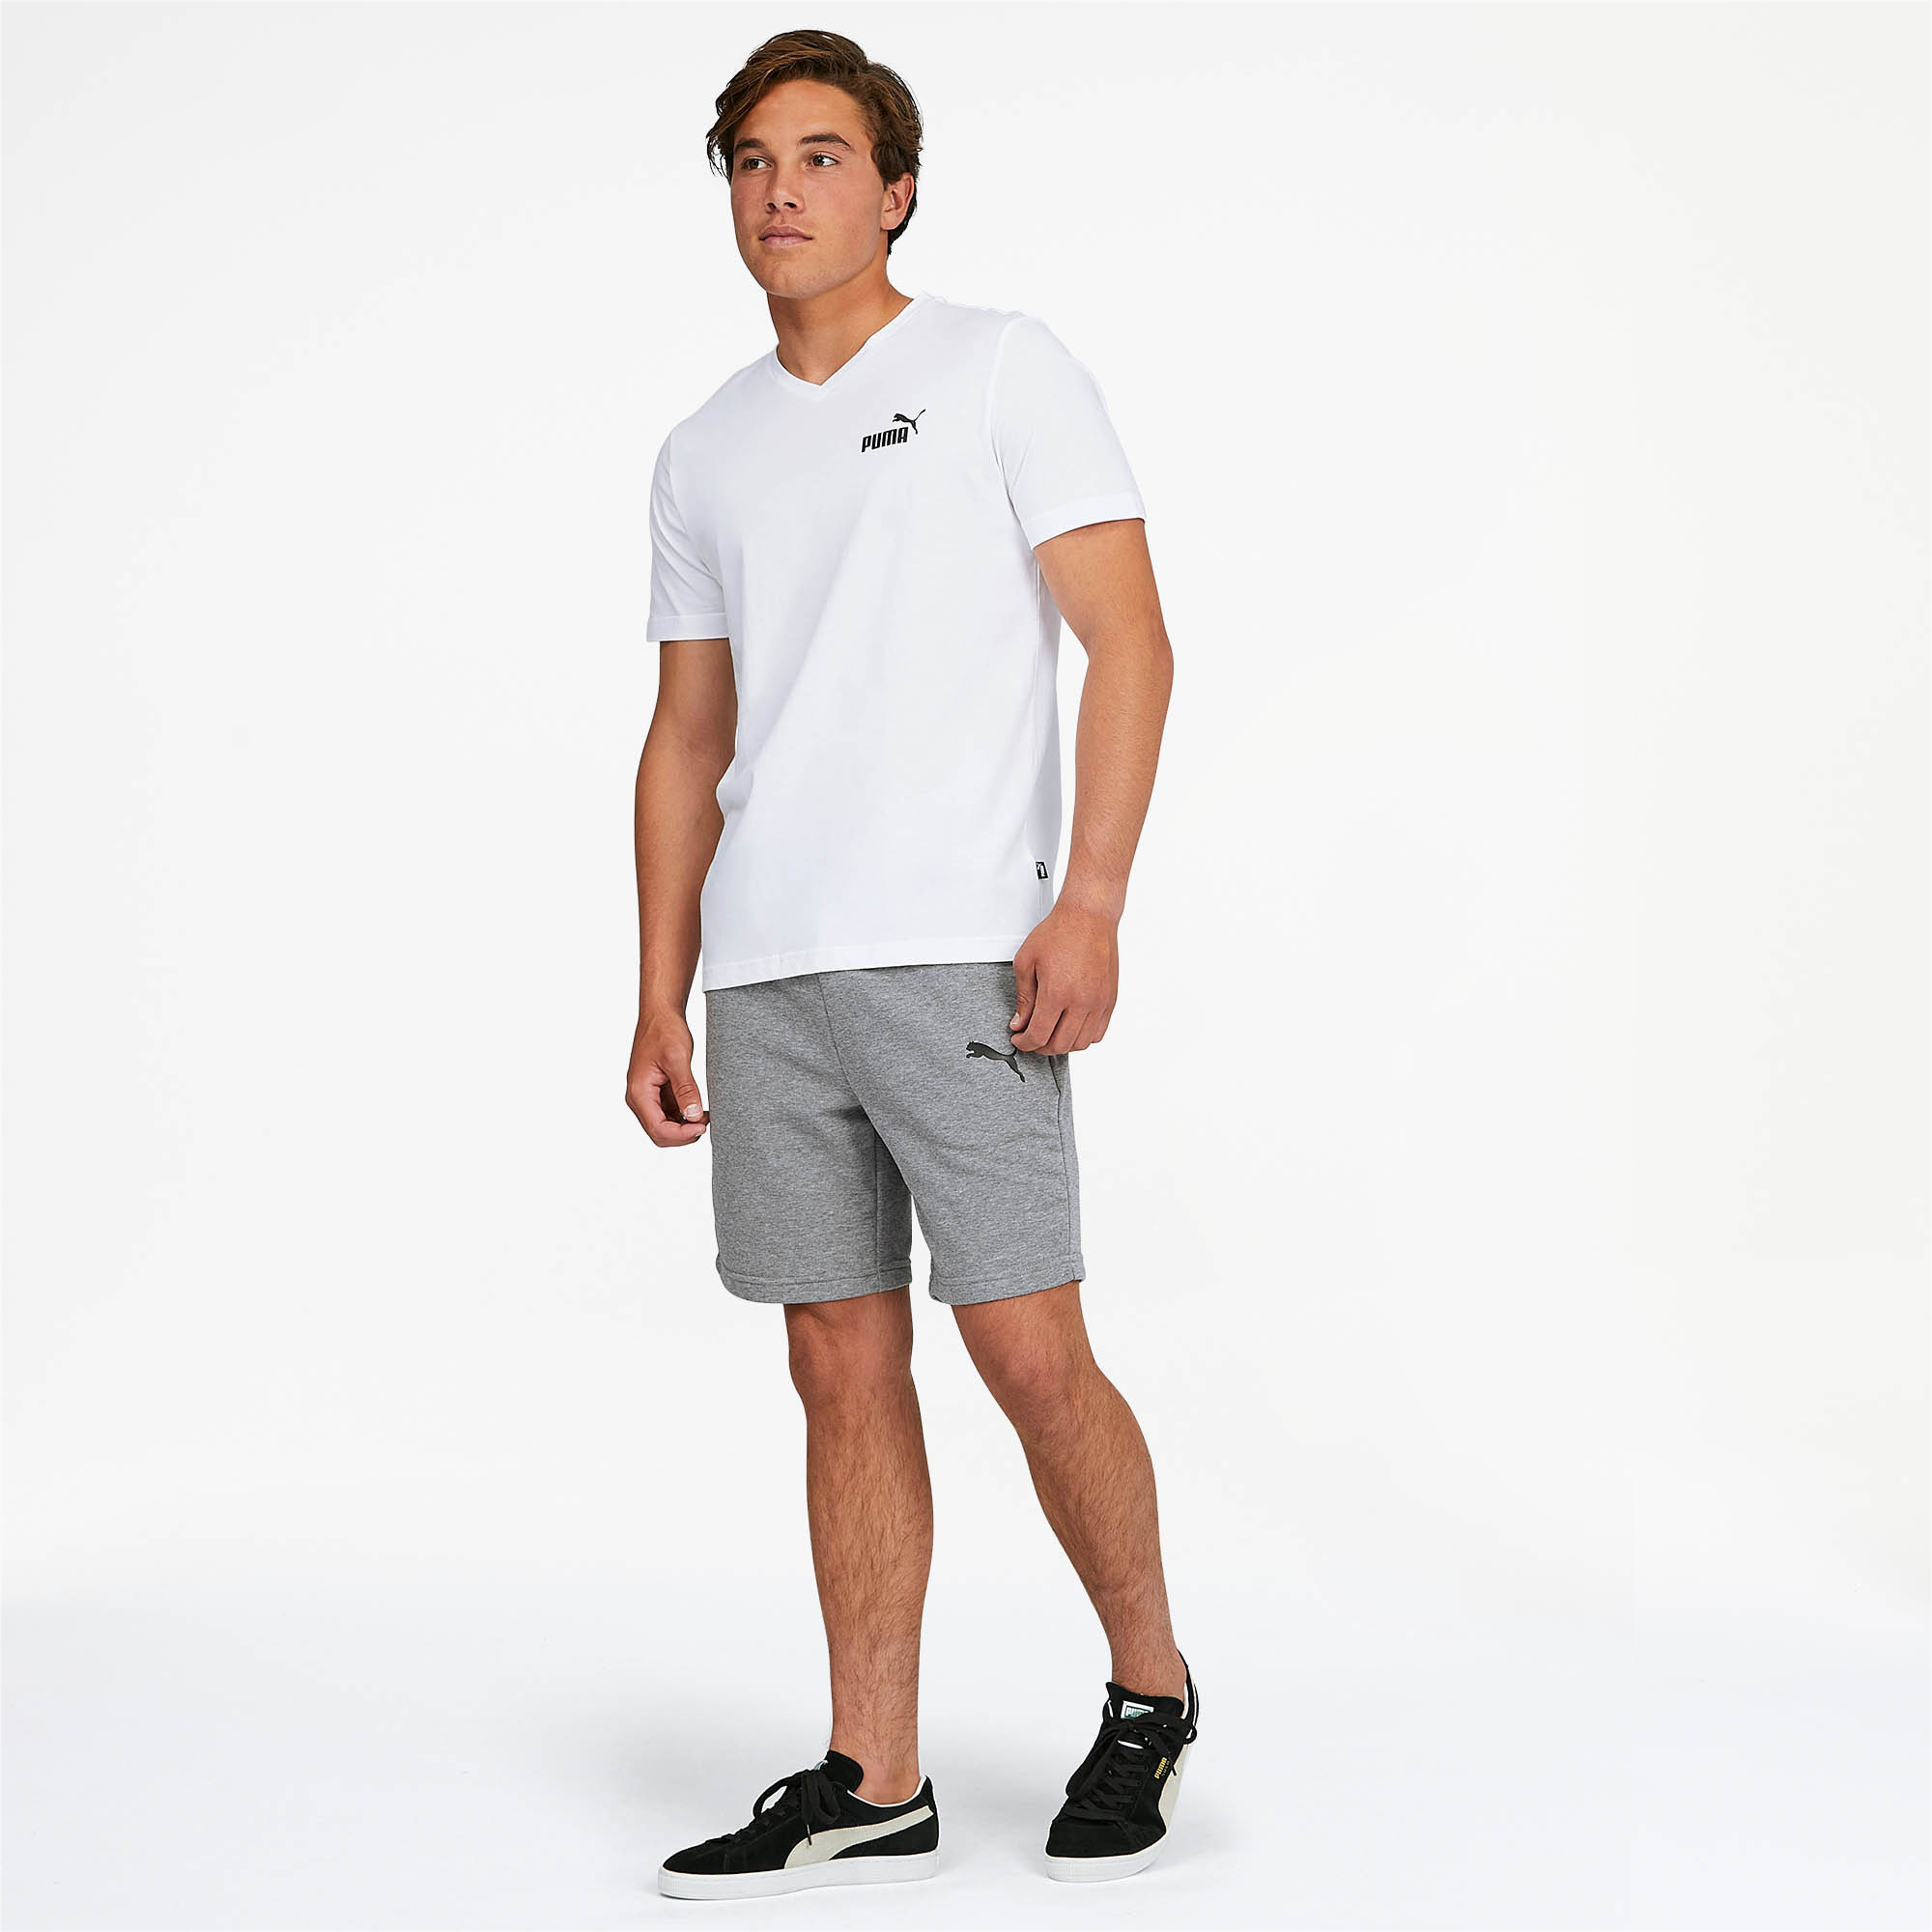 PUMA-Essentials-Men-039-s-V-Neck-Tee-Men-Tee-Basics thumbnail 13